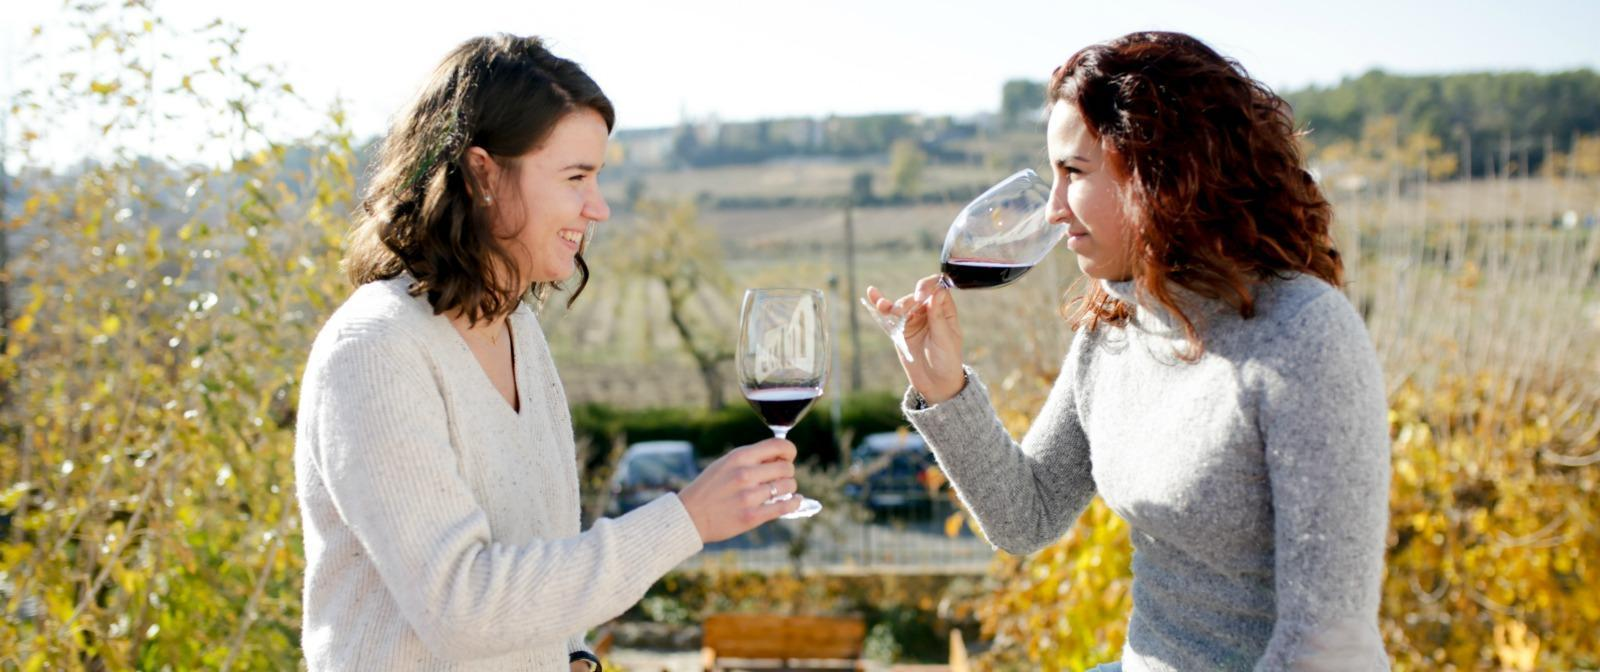 Visit the Winery in English penedes tour pares balta